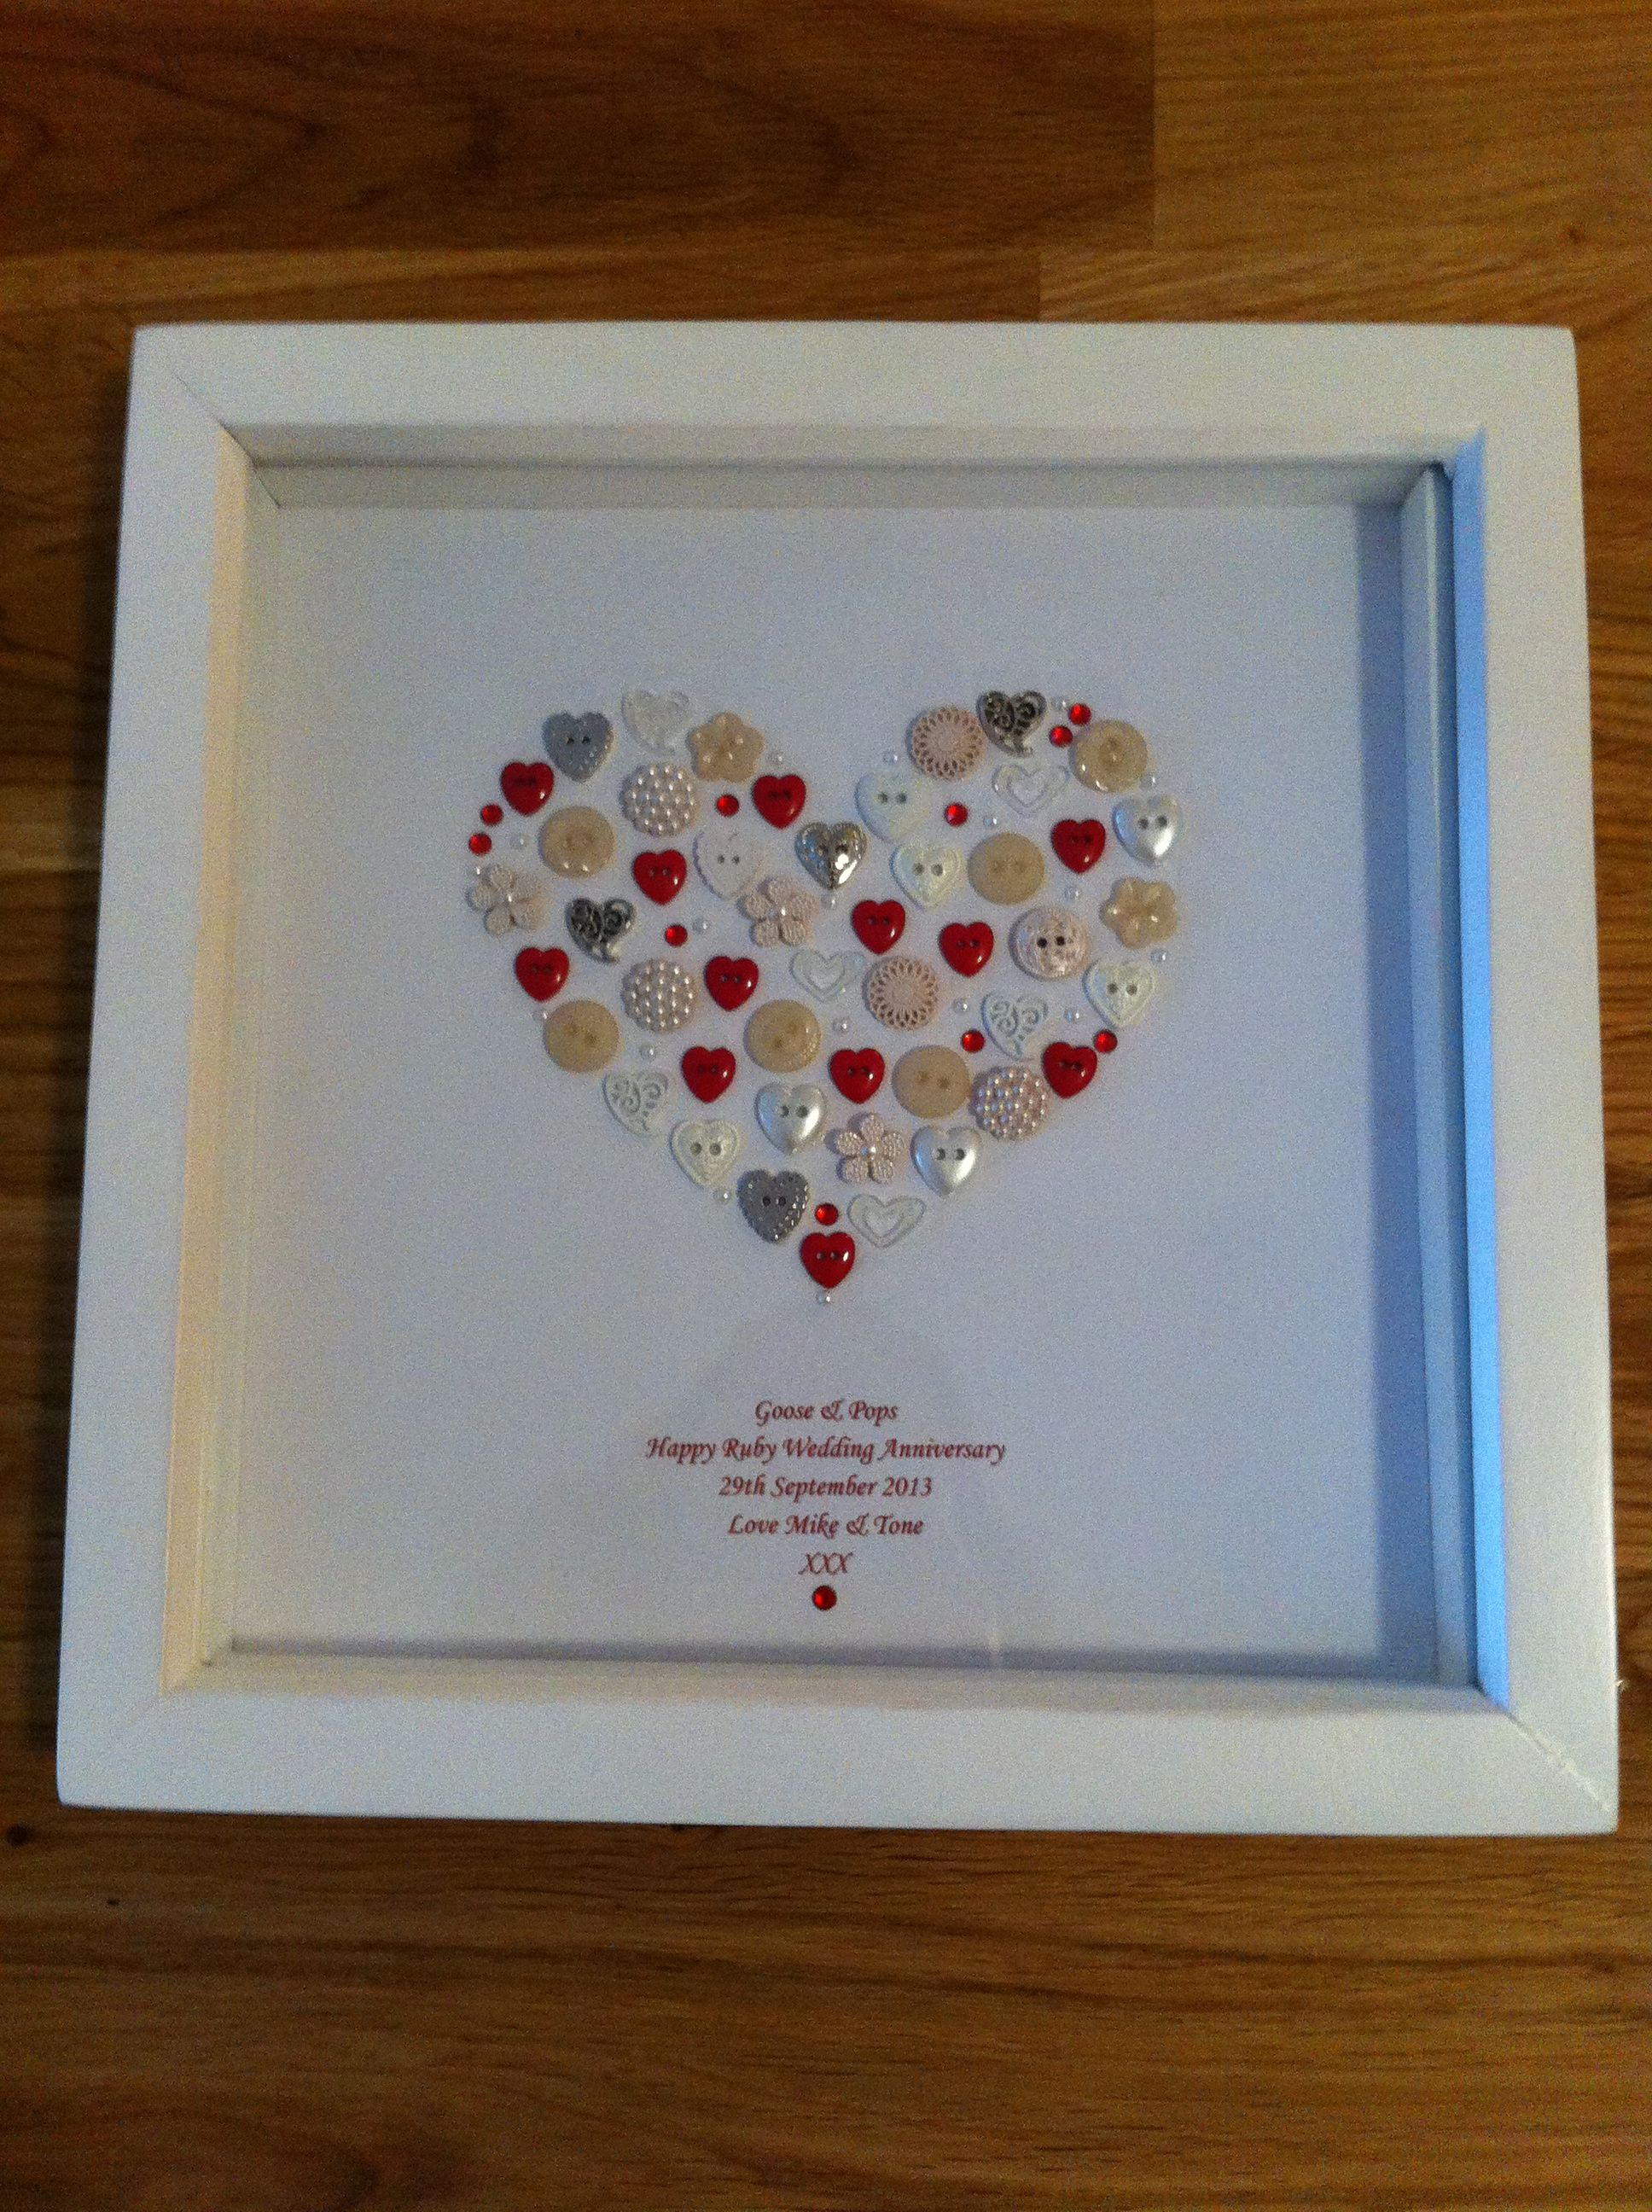 Framed Heart Button Artwork Personalised For A Ruby Wedding